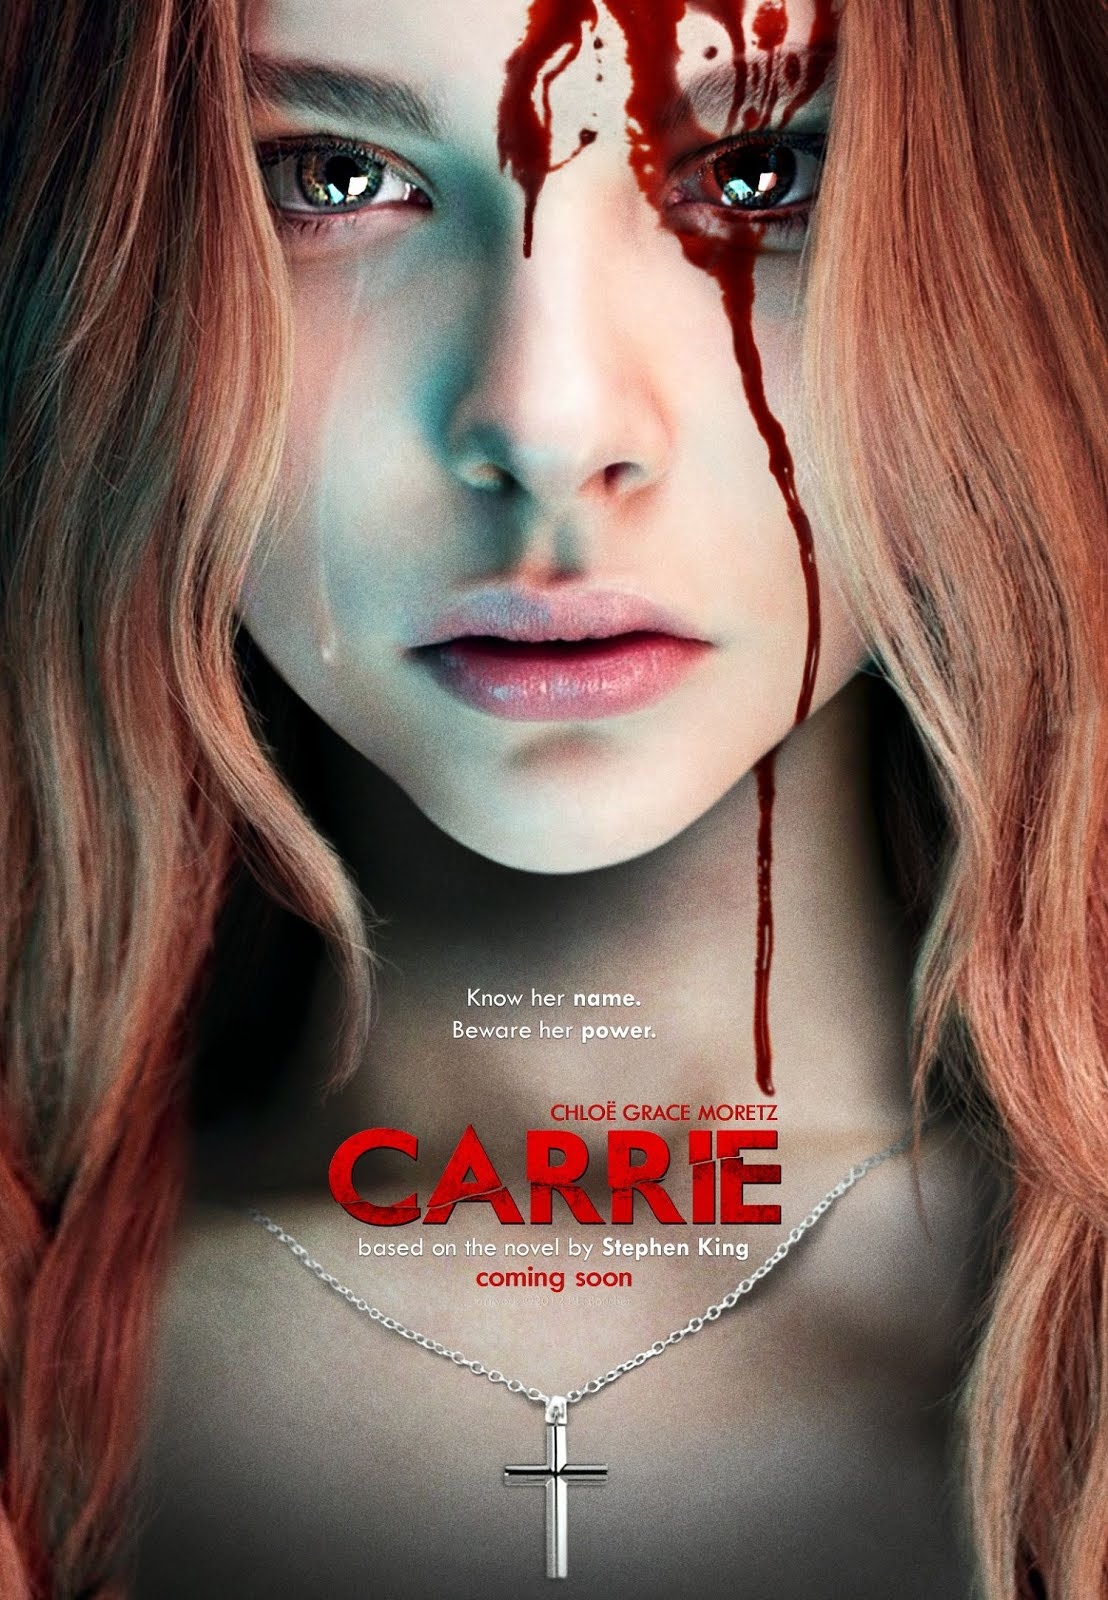 'Carrie' is back in cinemas today. But horror is still being let down by films that hatewomen